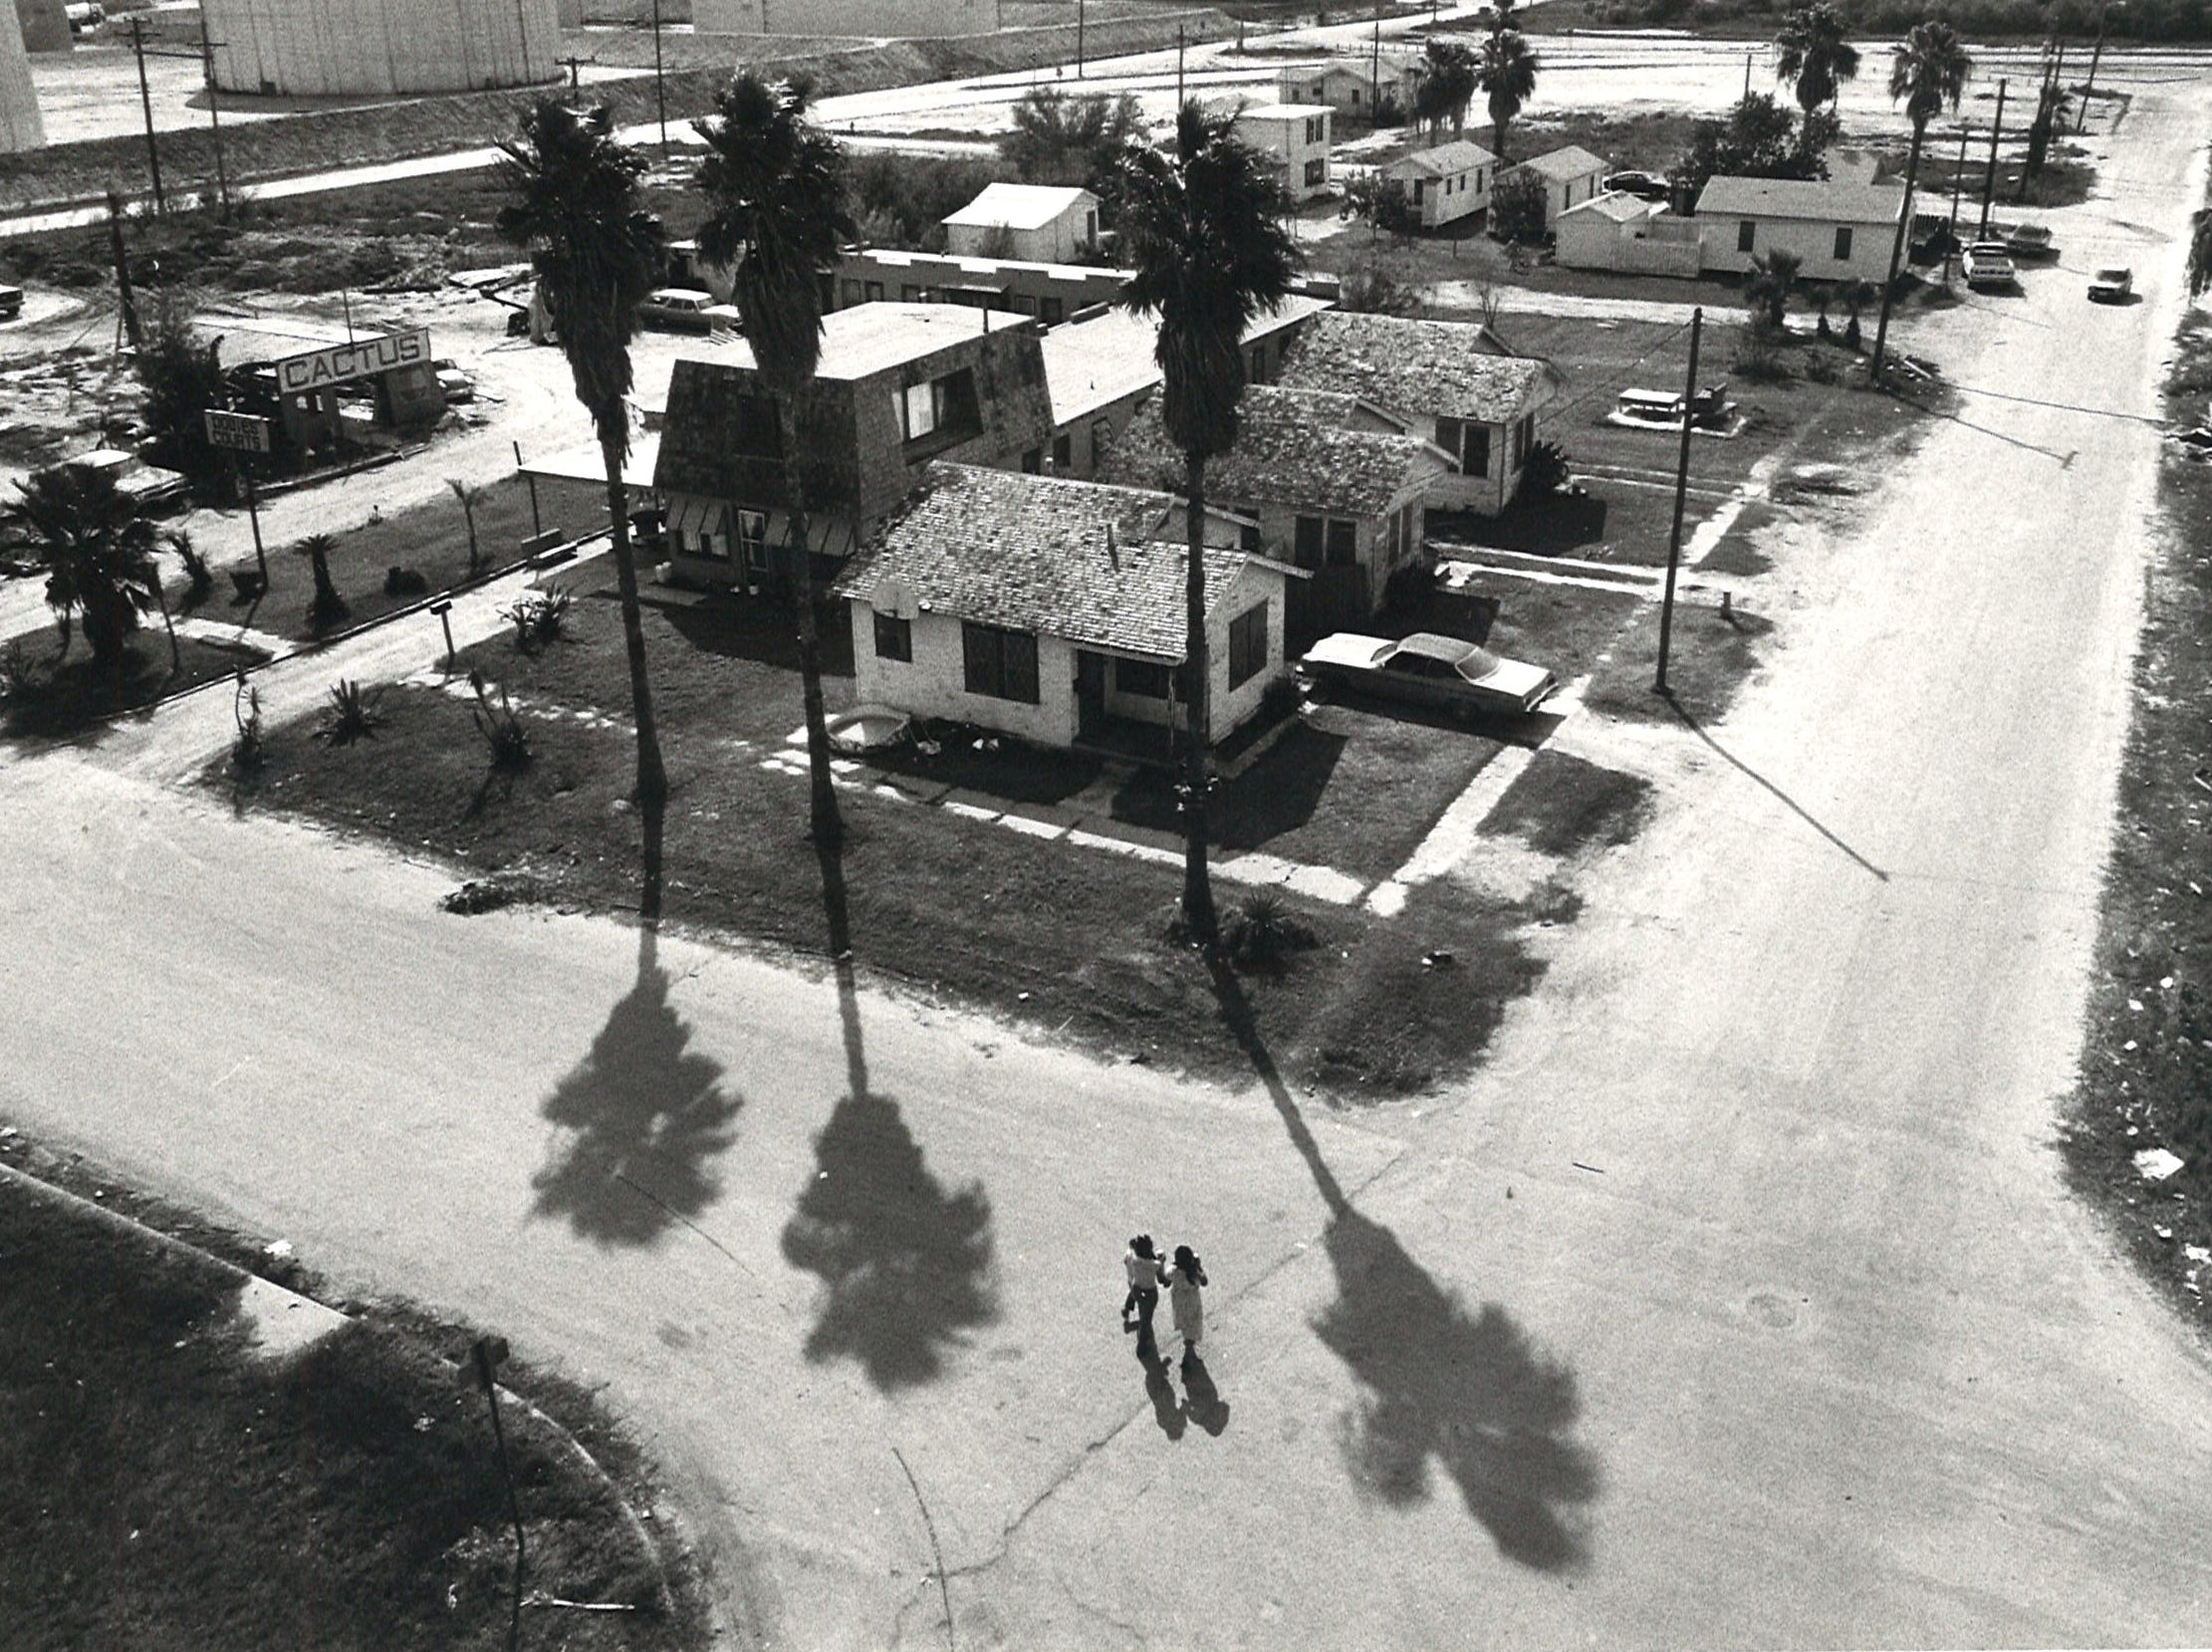 The intersection of Bridgeport and West Surfside on Corpus Christi's North Beach on Aug. 18, 1982.